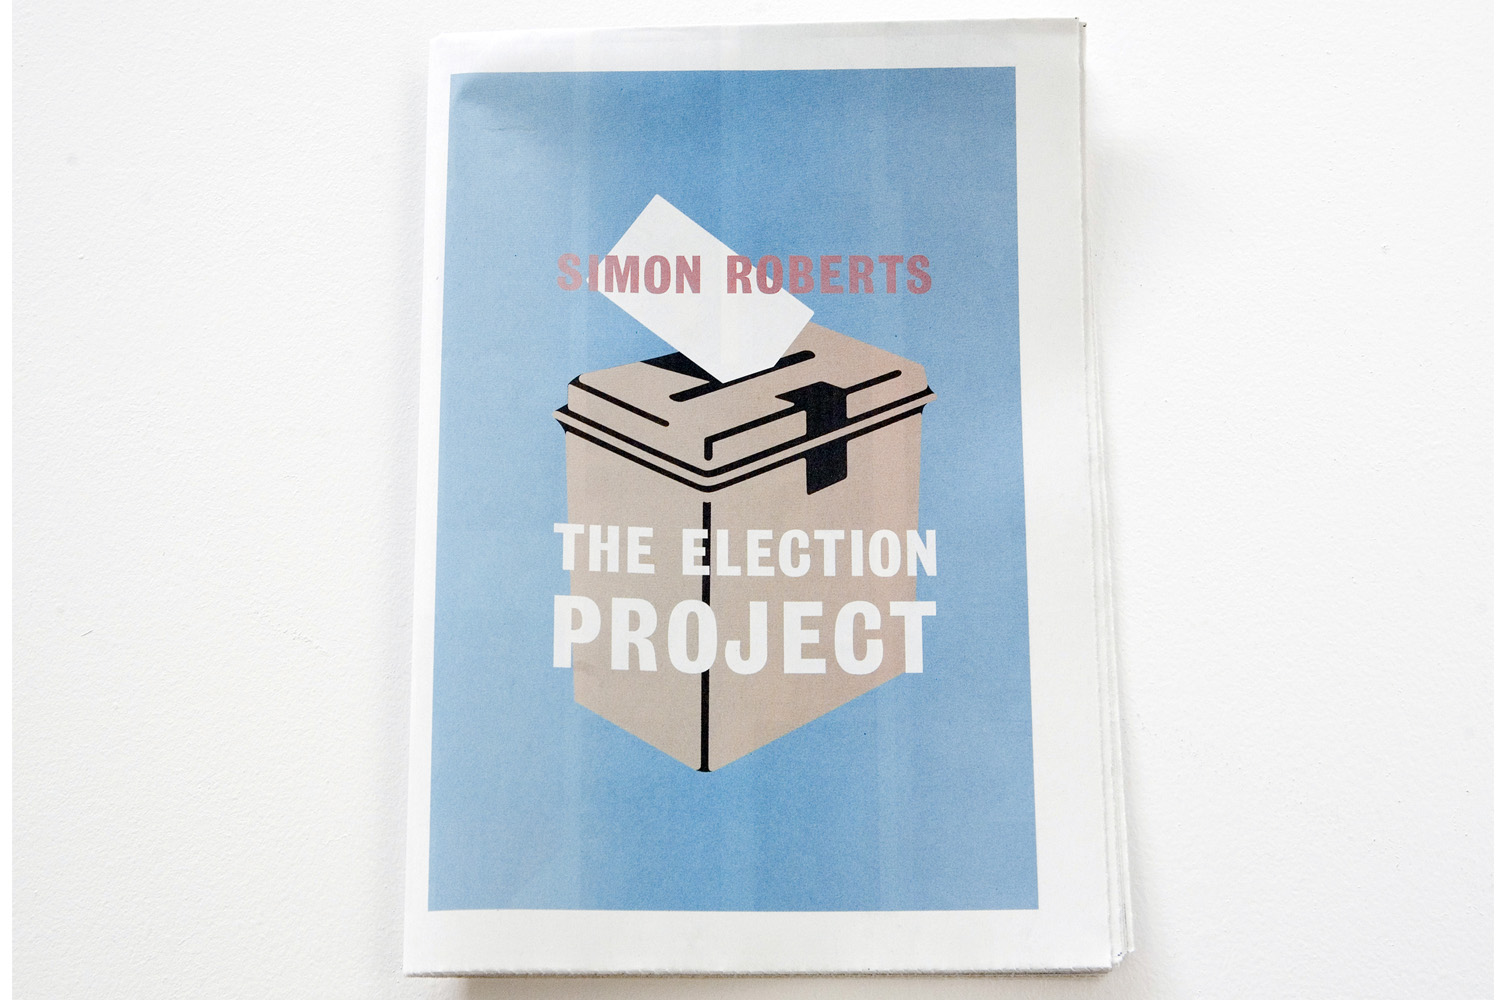 The Election Project by Simon Roberts